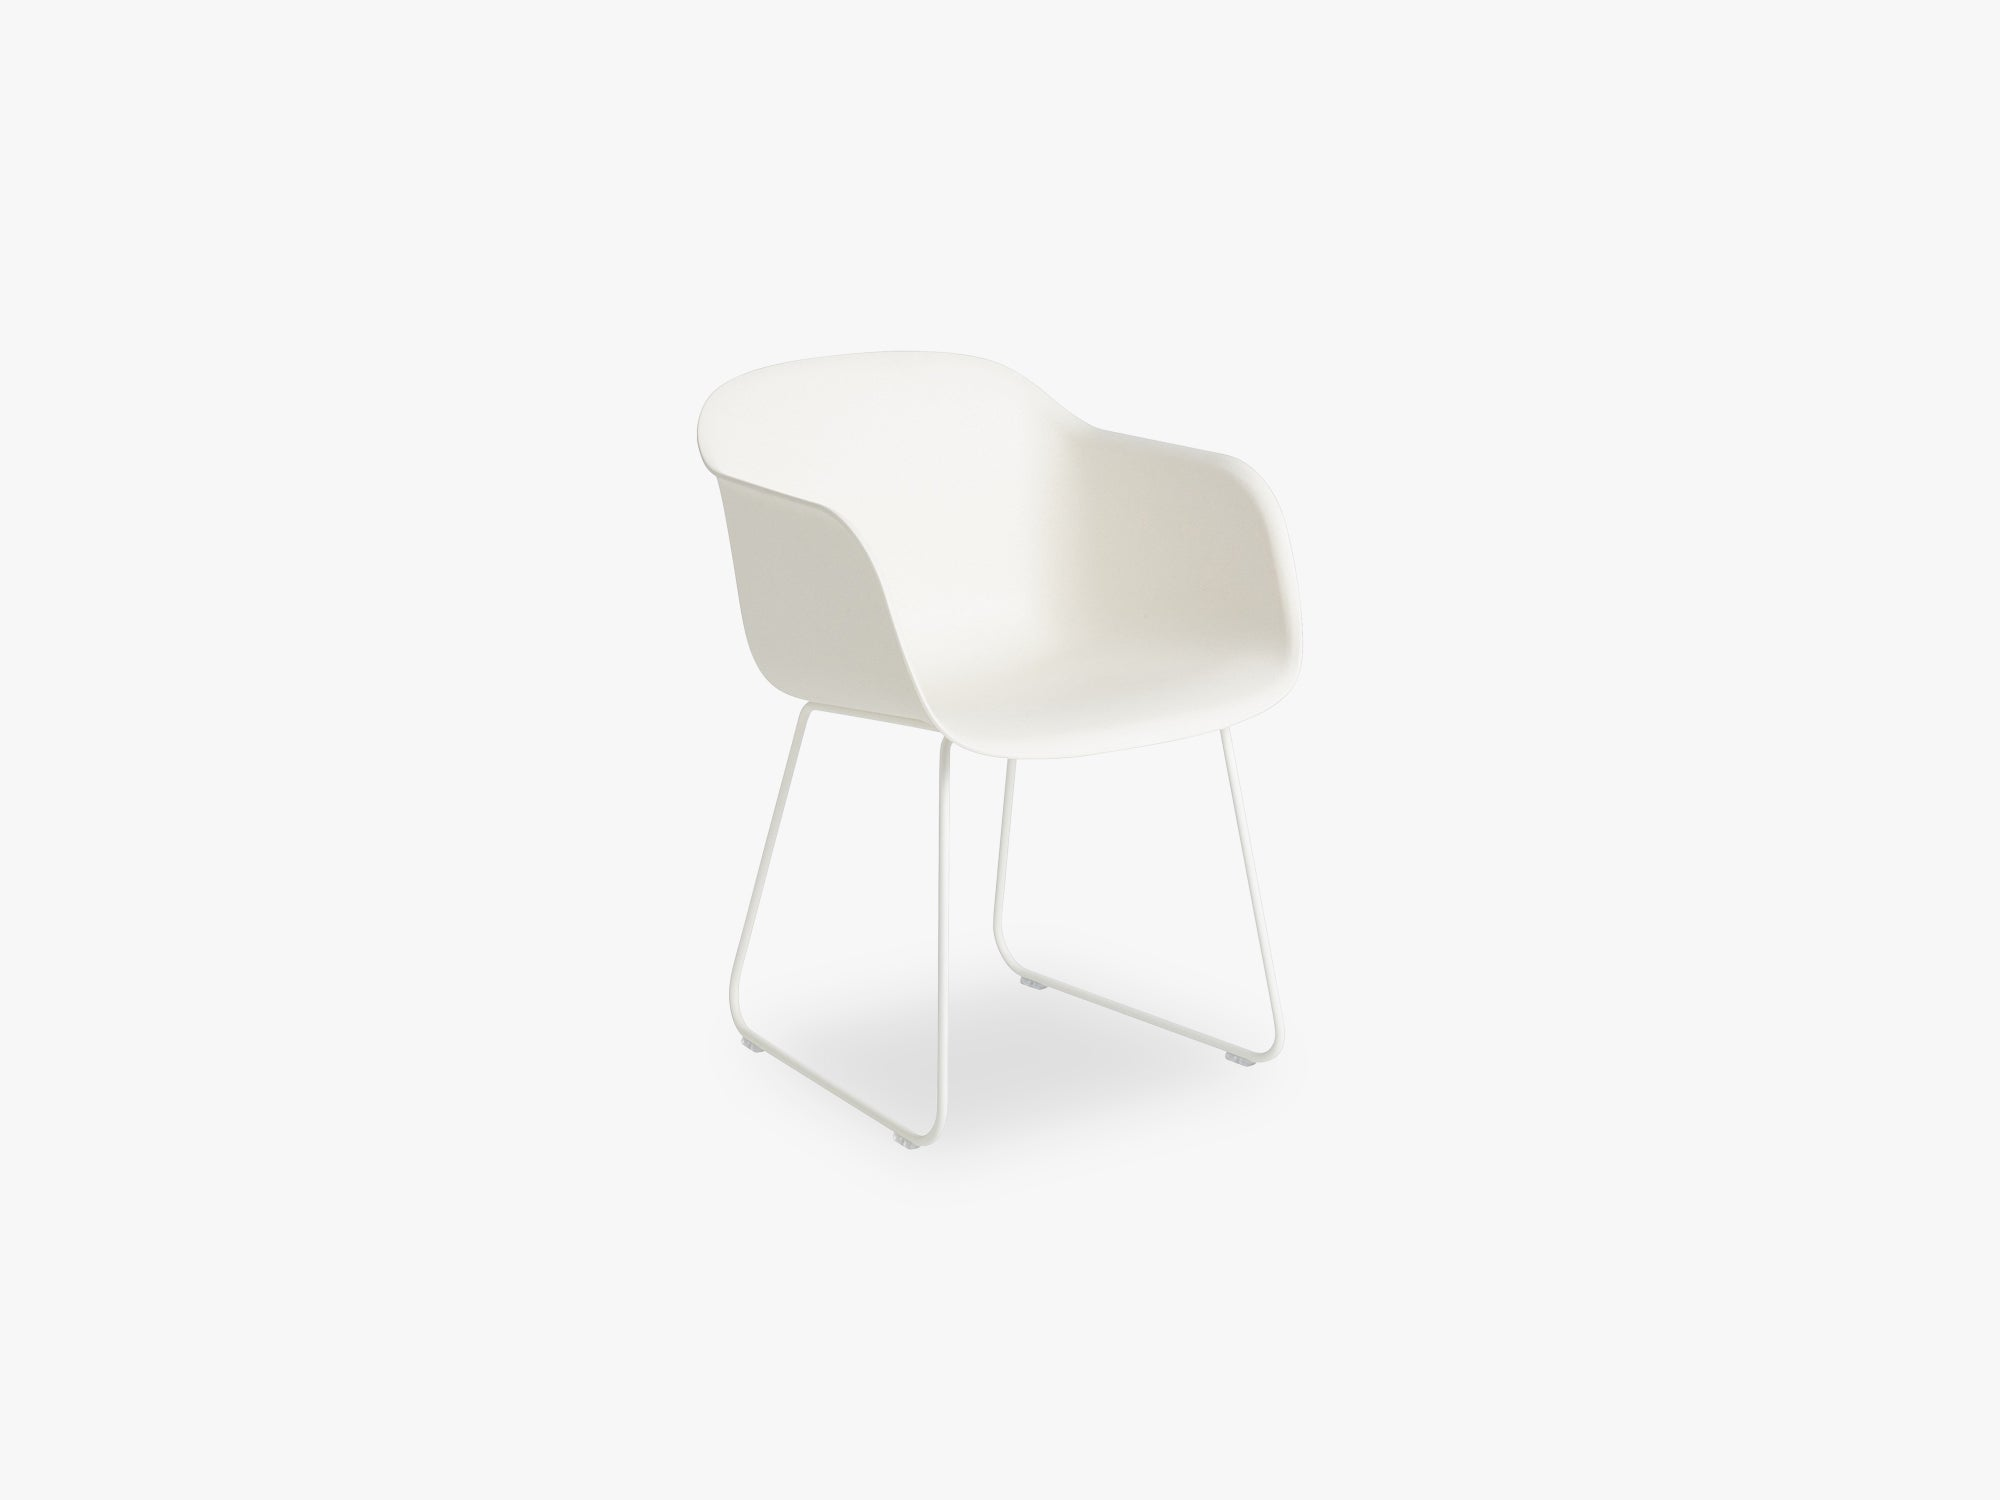 Fiber Armchair - Sled Base - Normal Shell, Natural White/White fra Muuto